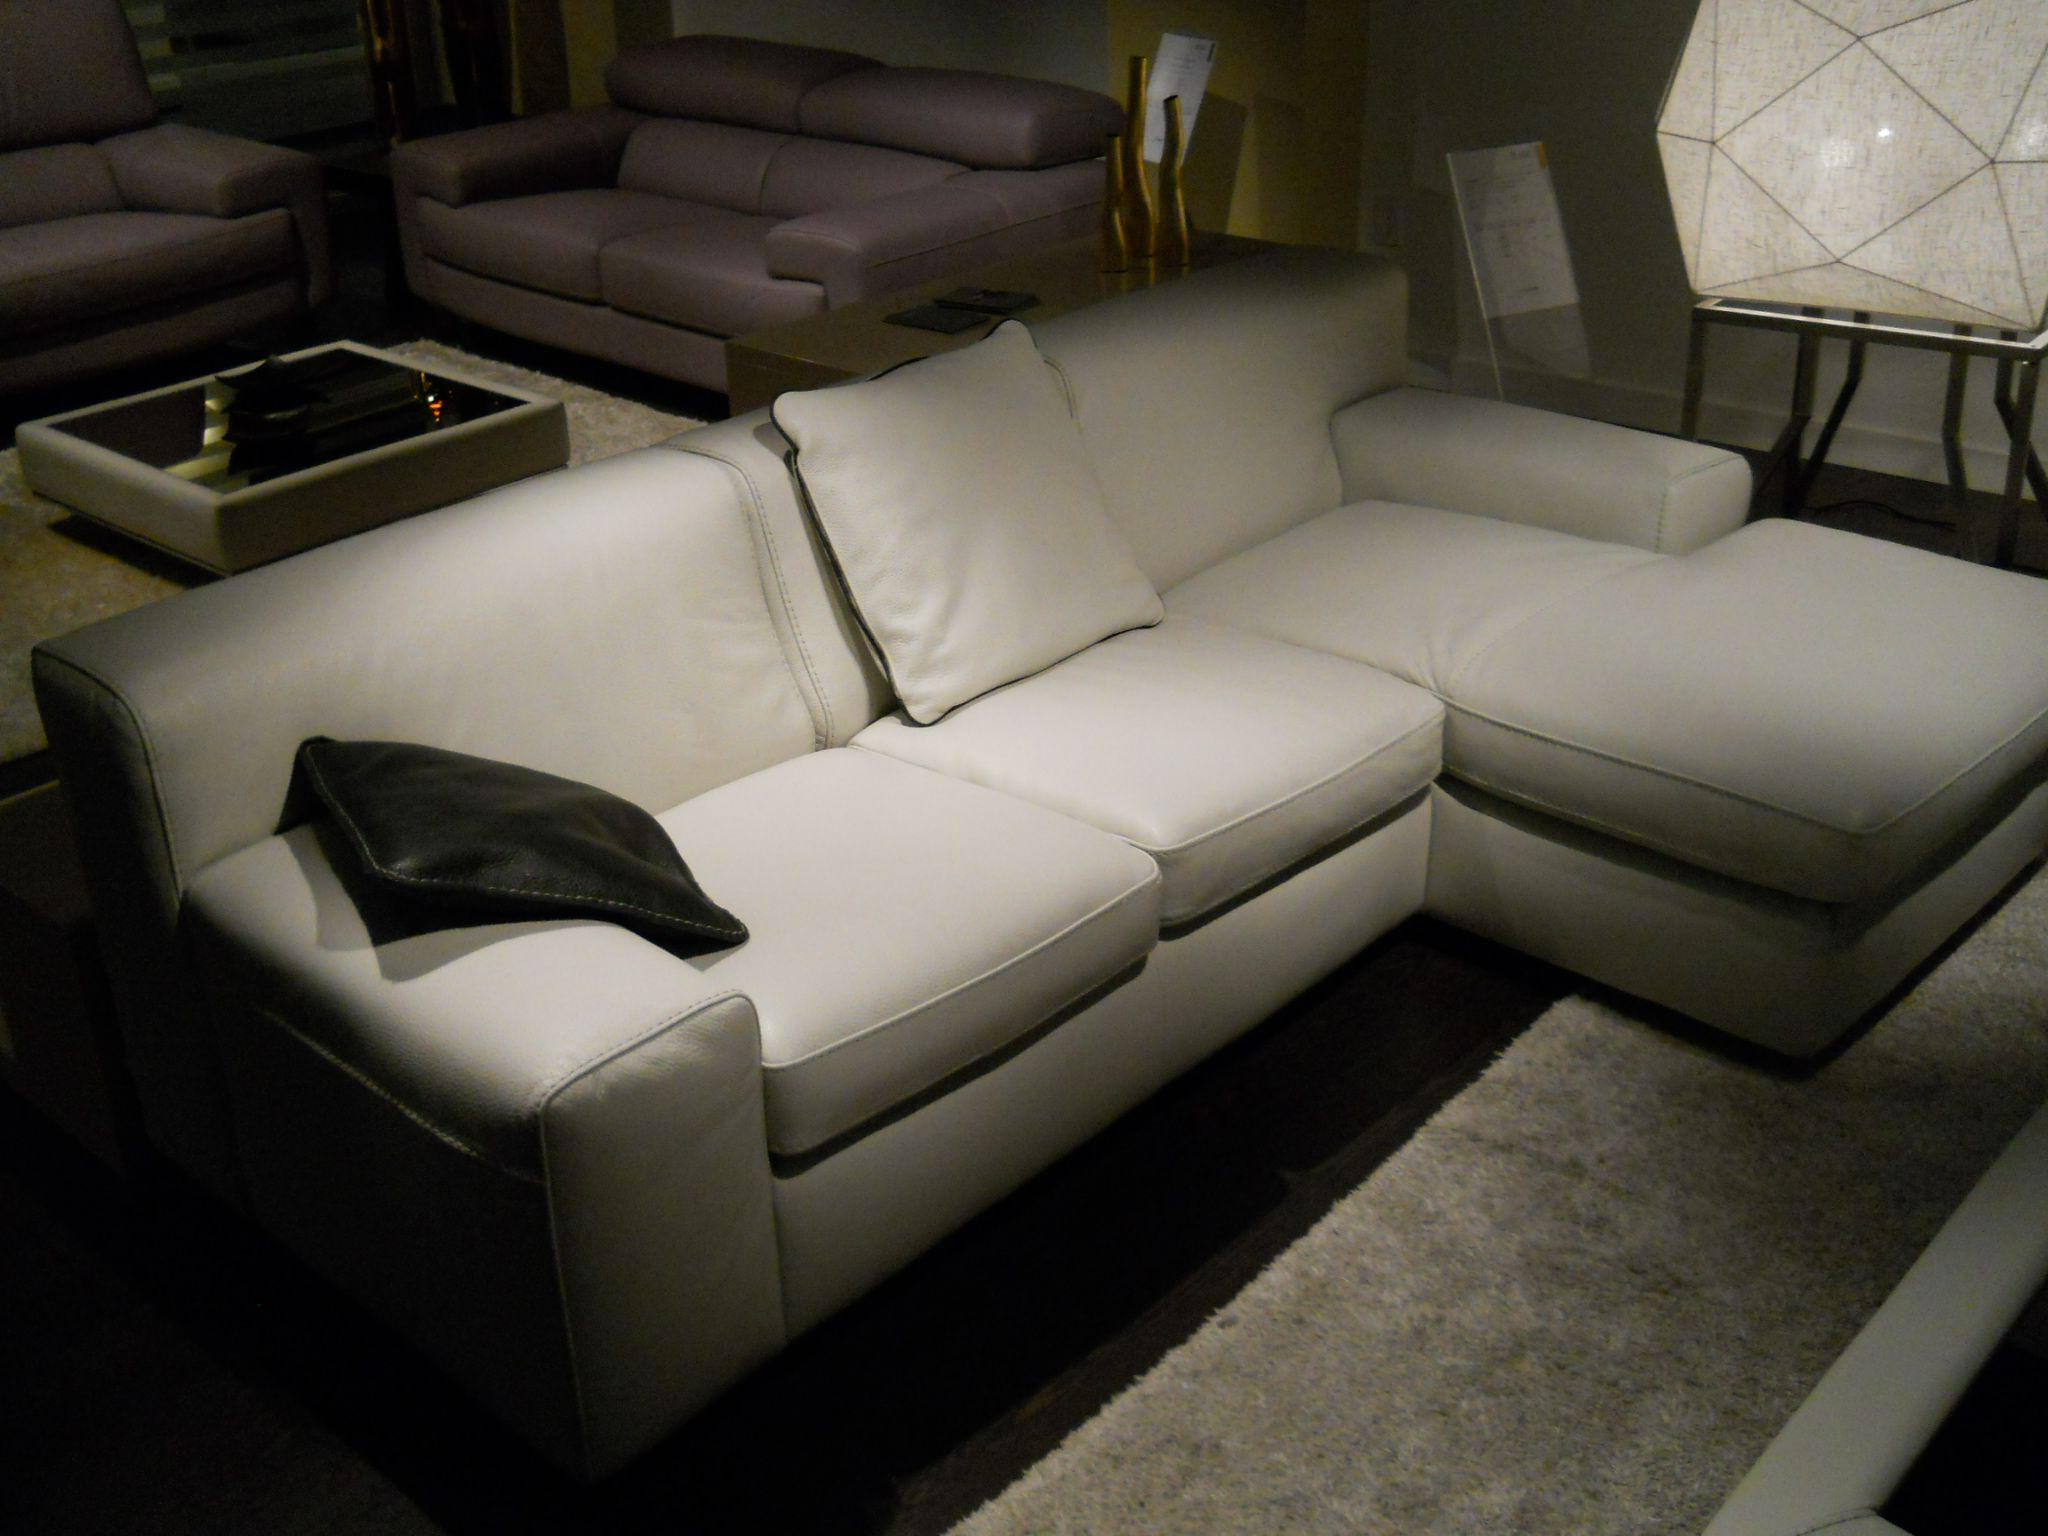 condo sized sectional sofa ottawa bed reviews consumer reports off white size leather made in italy